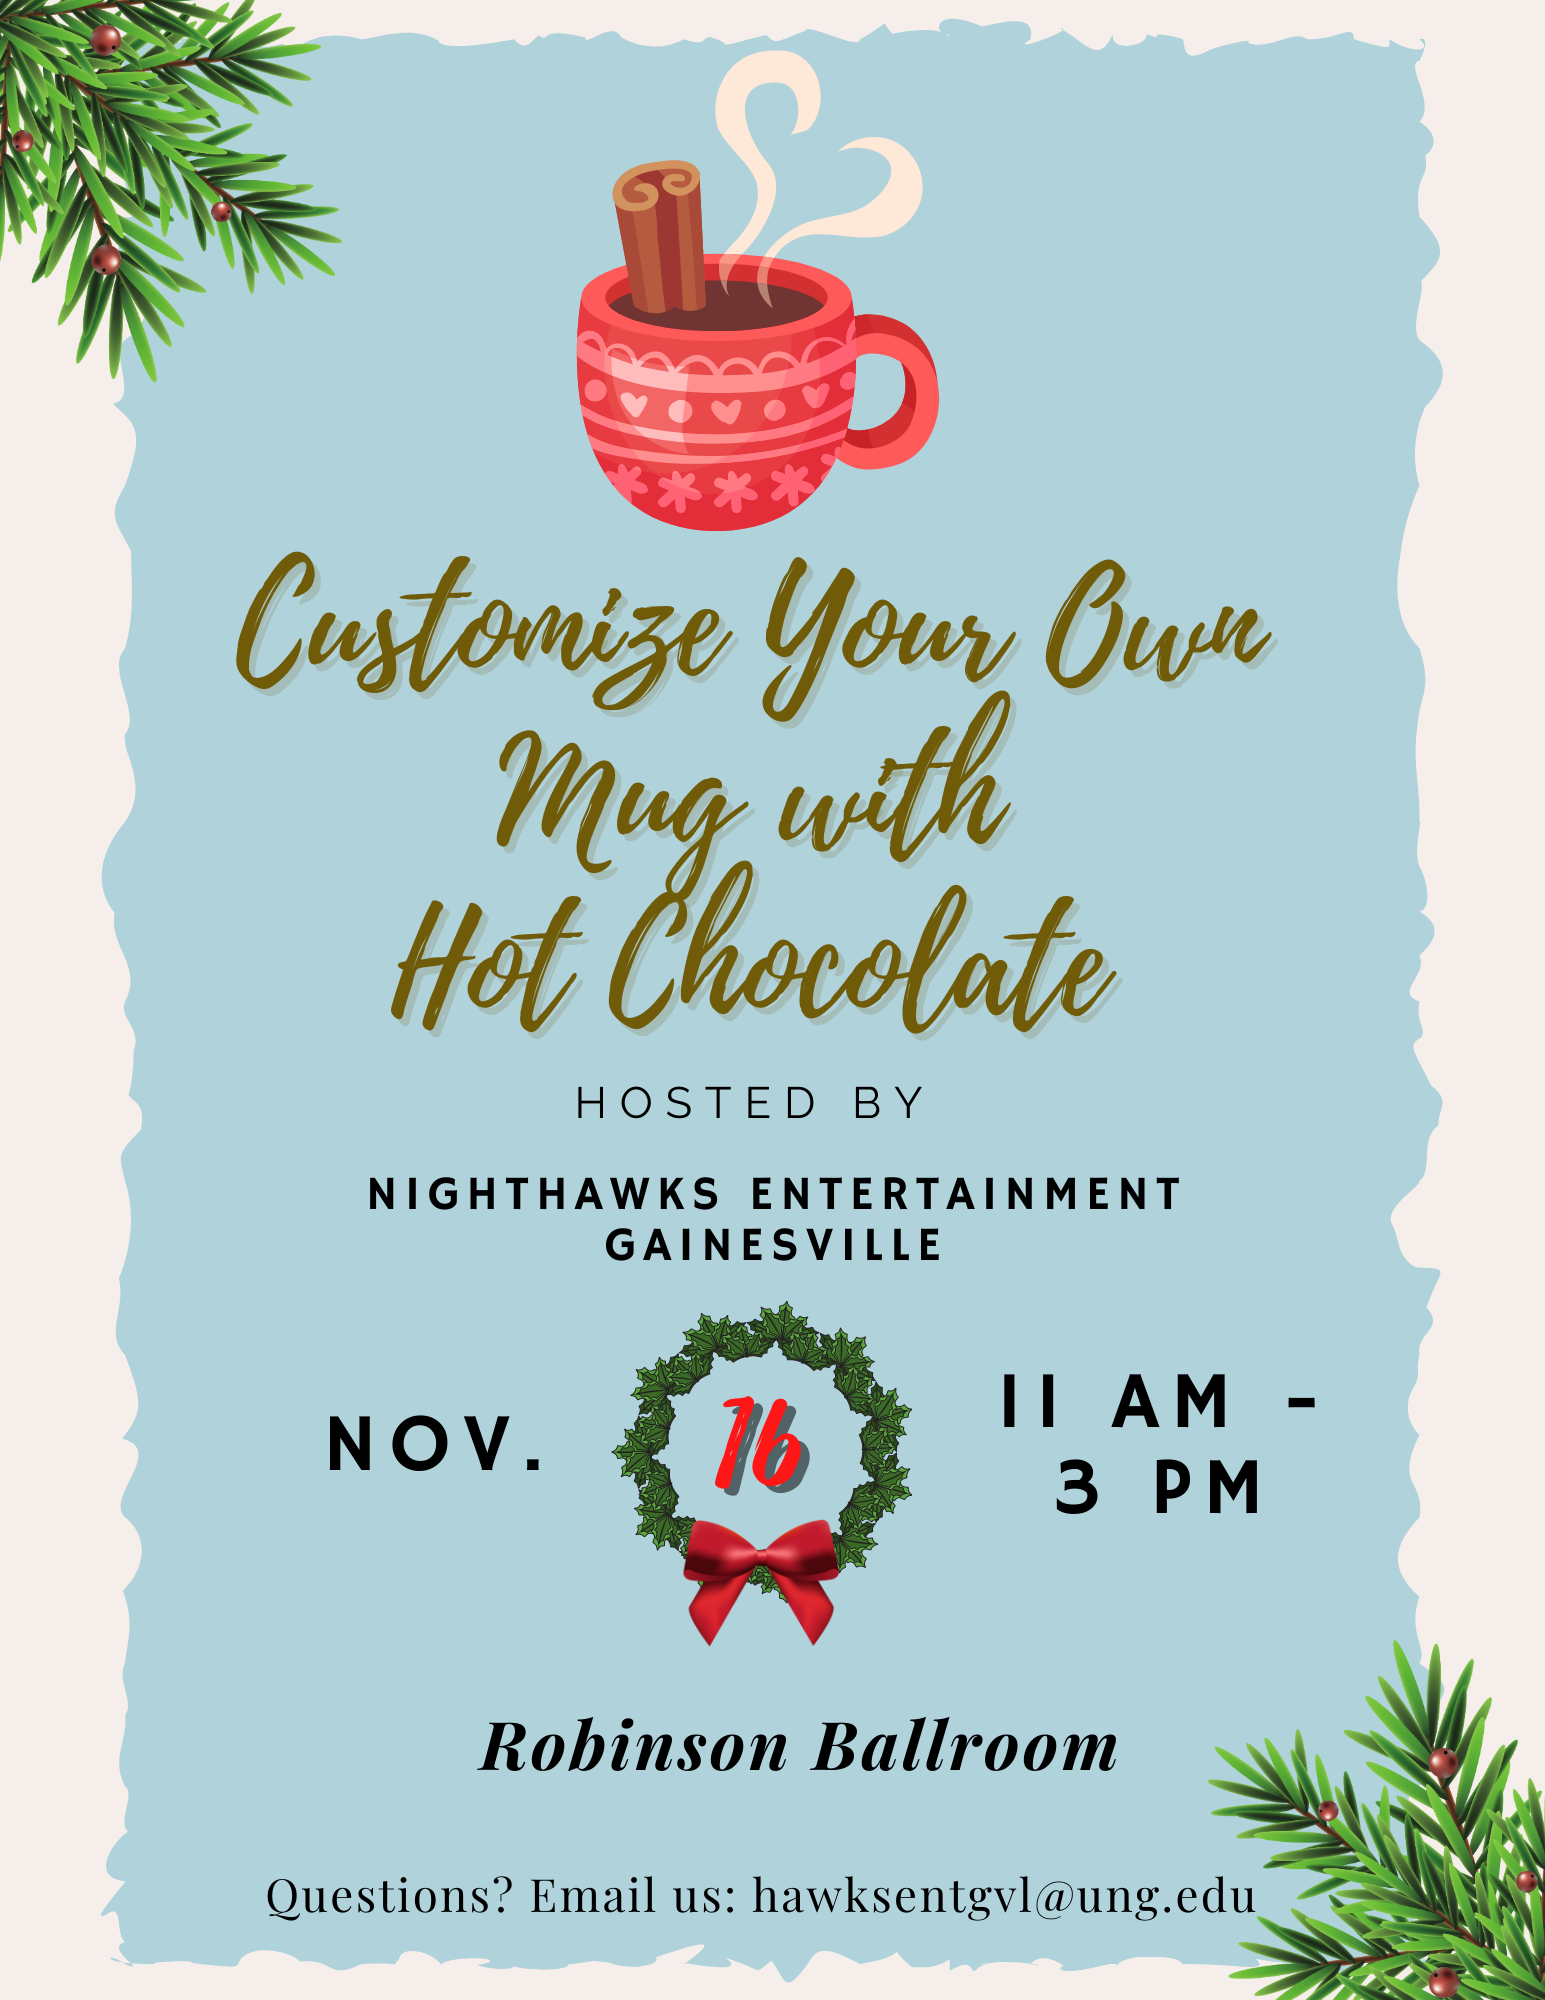 Customize Your Own Mug with Hot Chocolate! Hosted by Nighthawks Entertainment Gainesville, Nov. 16th 11AM-3PM in the Robinson Ballroom. Questions? Email us: hawksentgvl@ung.edu